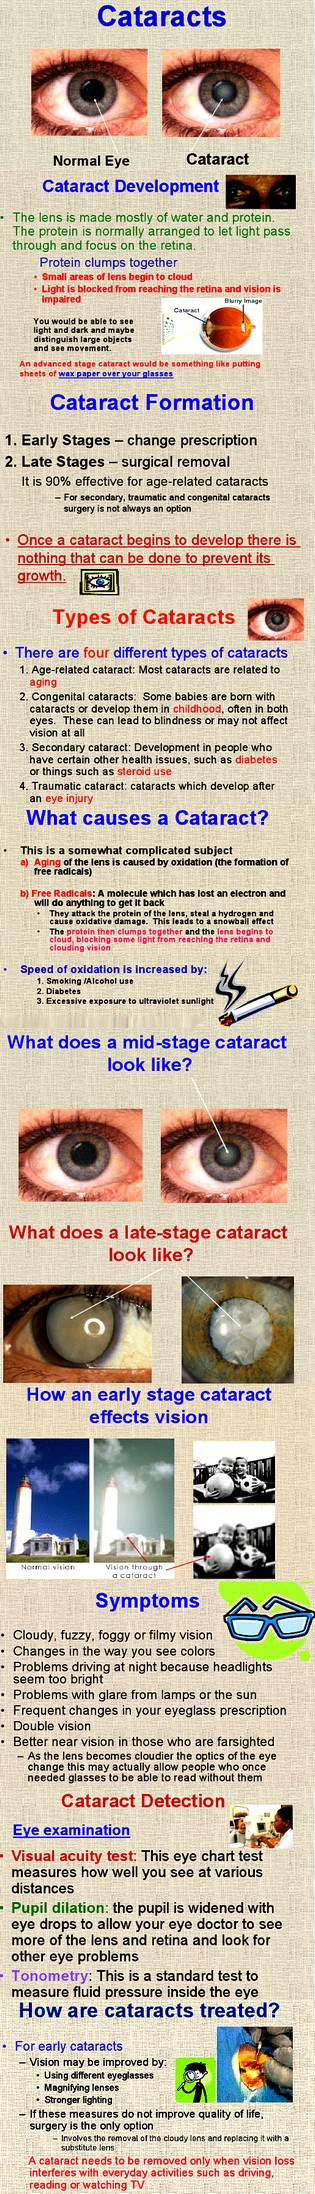 Infographic cataract